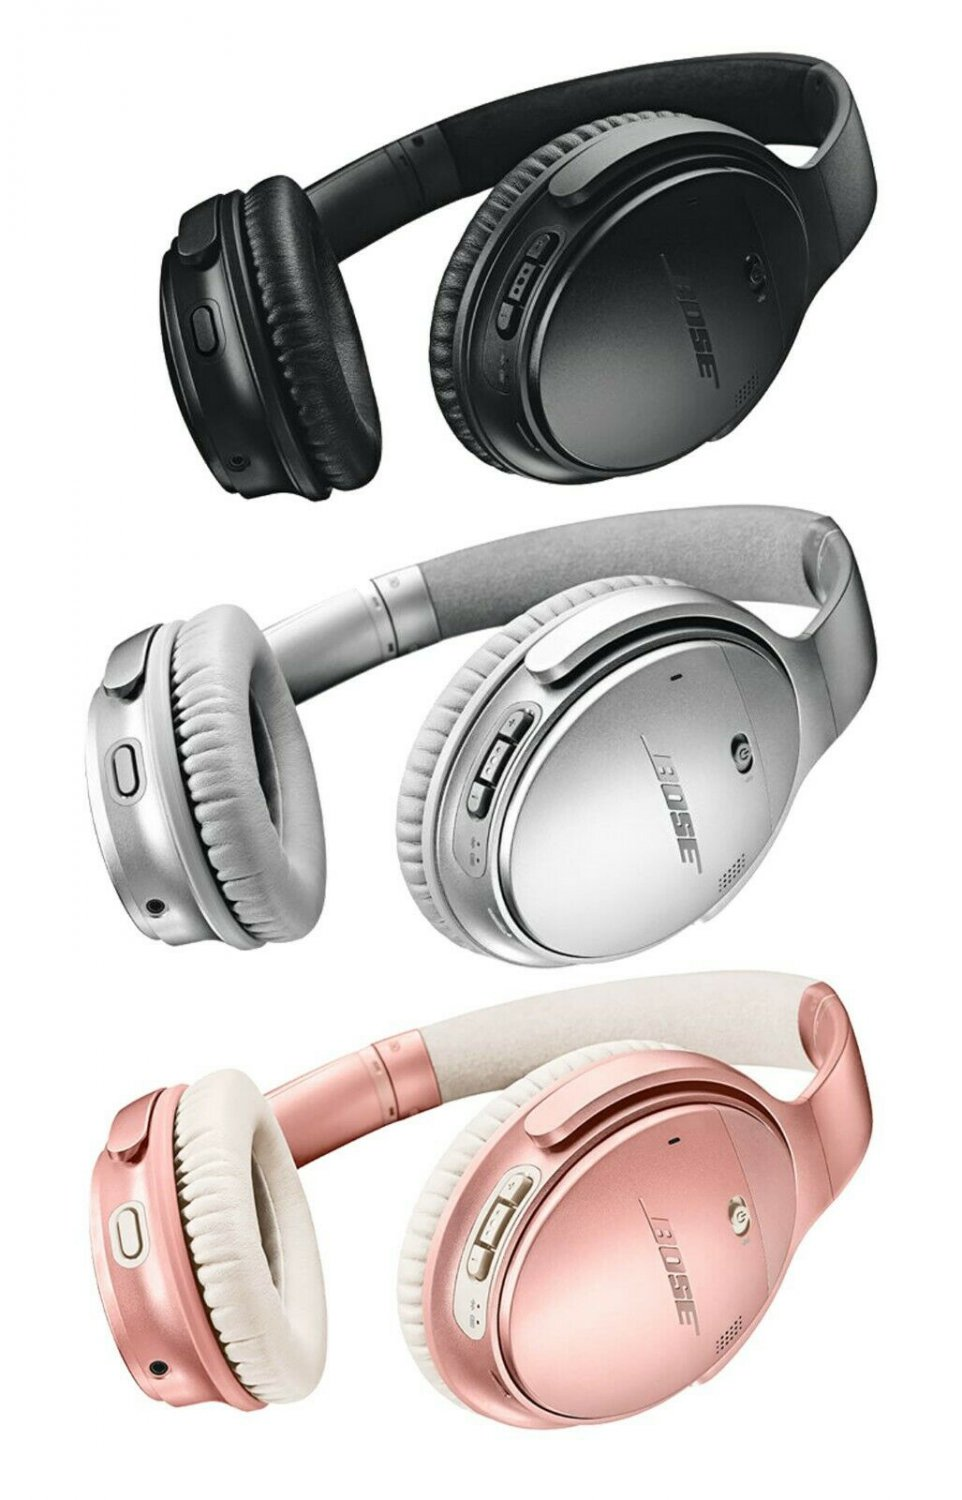 Bose QuietComfort 35 II Bluetooth Wireless Noise-Canceling Headphones